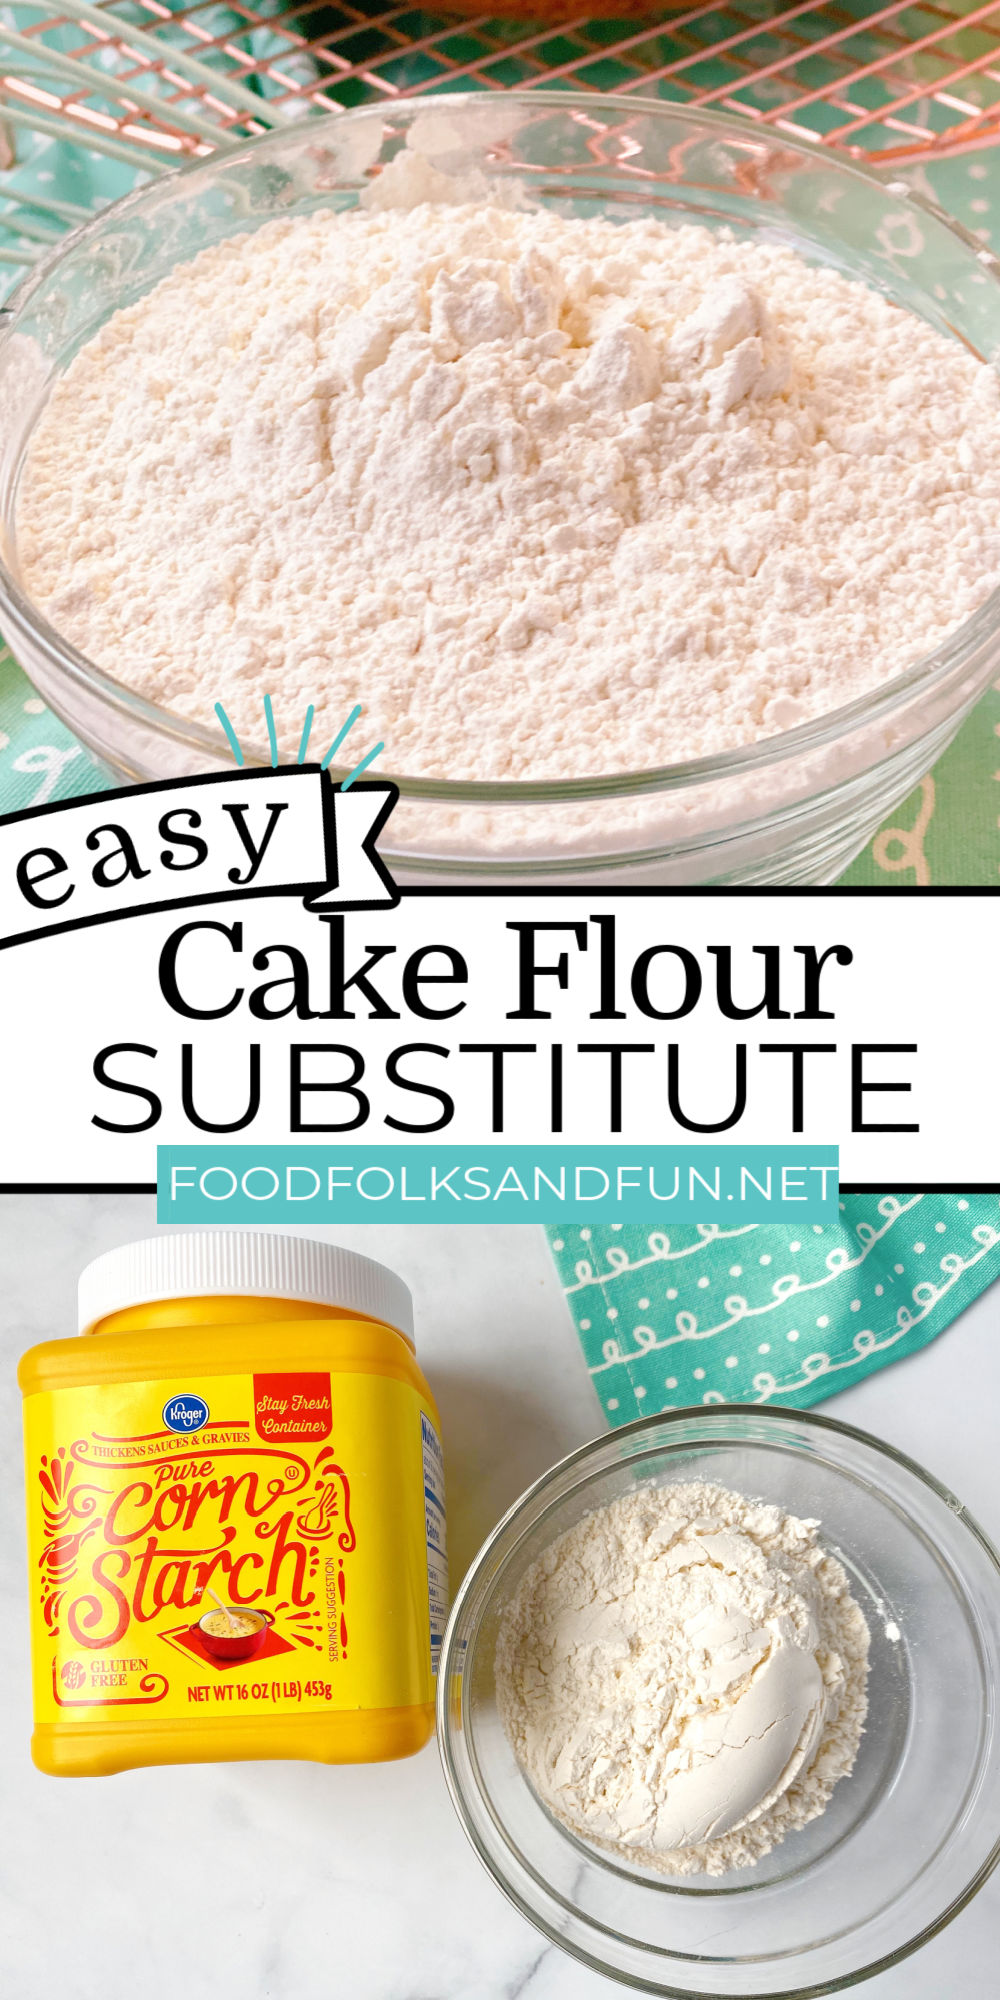 Cake Flour Substitute is easy to make at home! All that you need is just two ingredients: all-purpose flour and cornstarch. via @foodfolksandfun